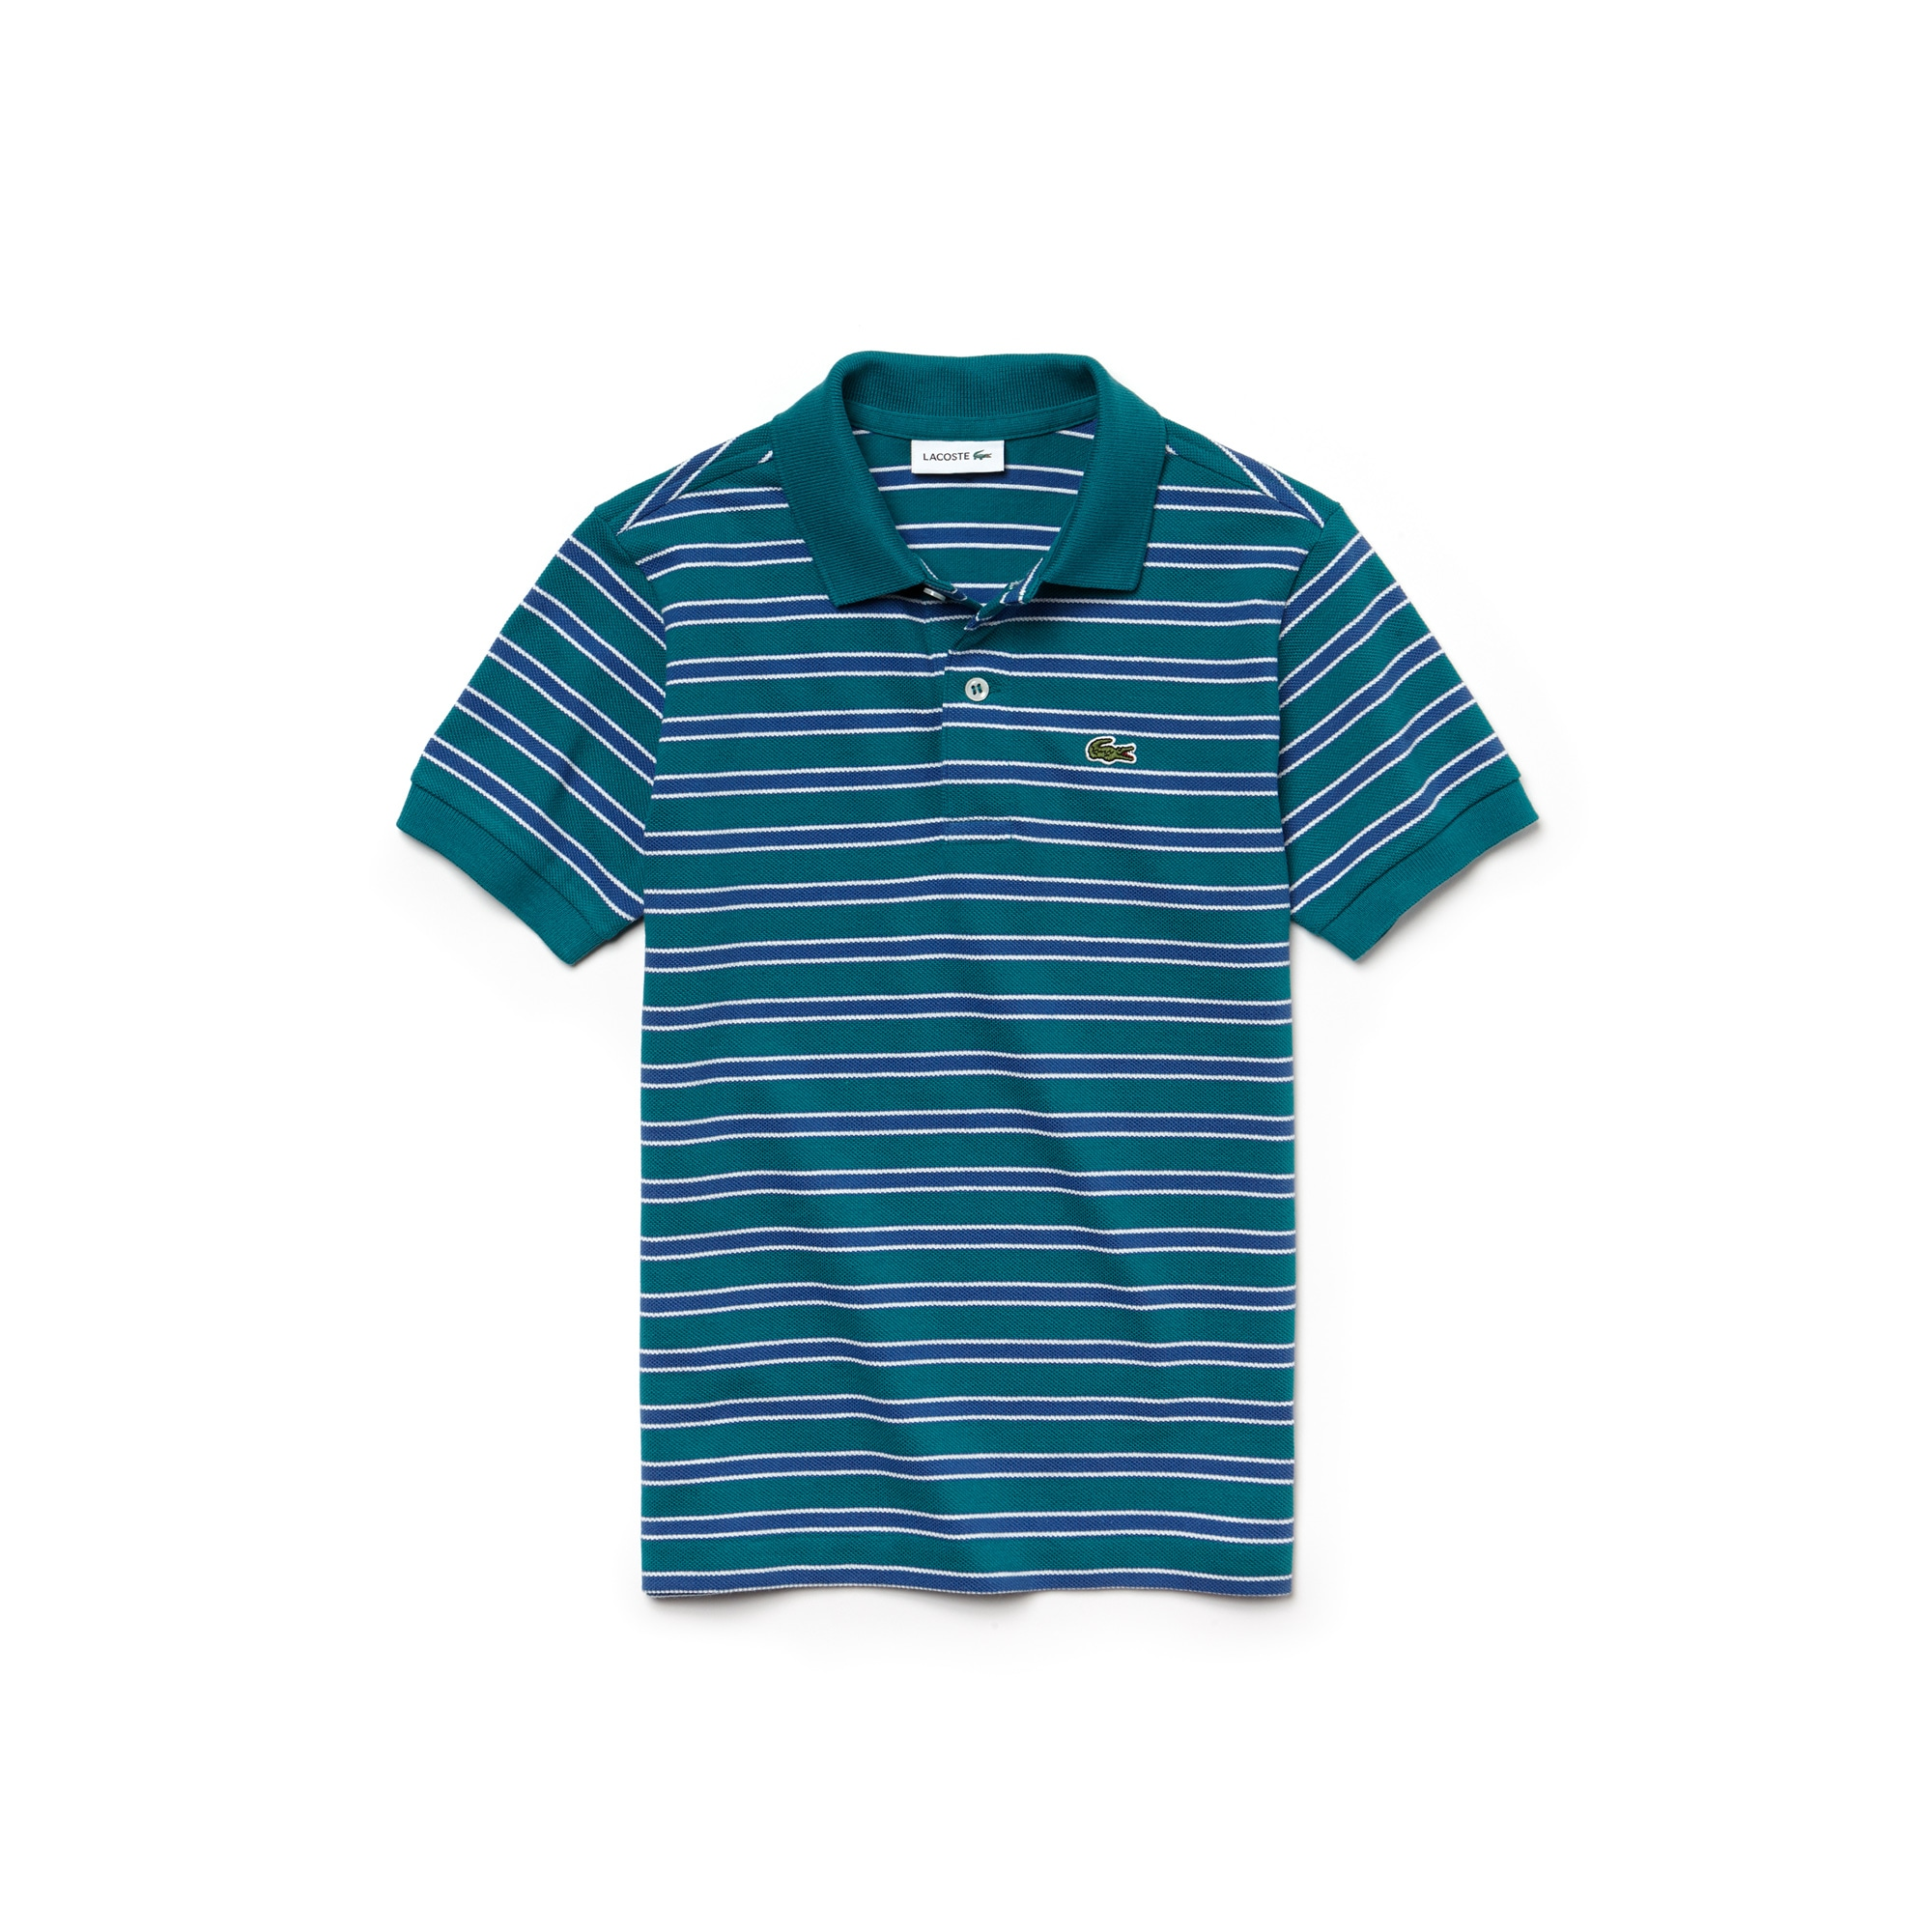 Boys' Lacoste Striped Cotton Piqué Polo